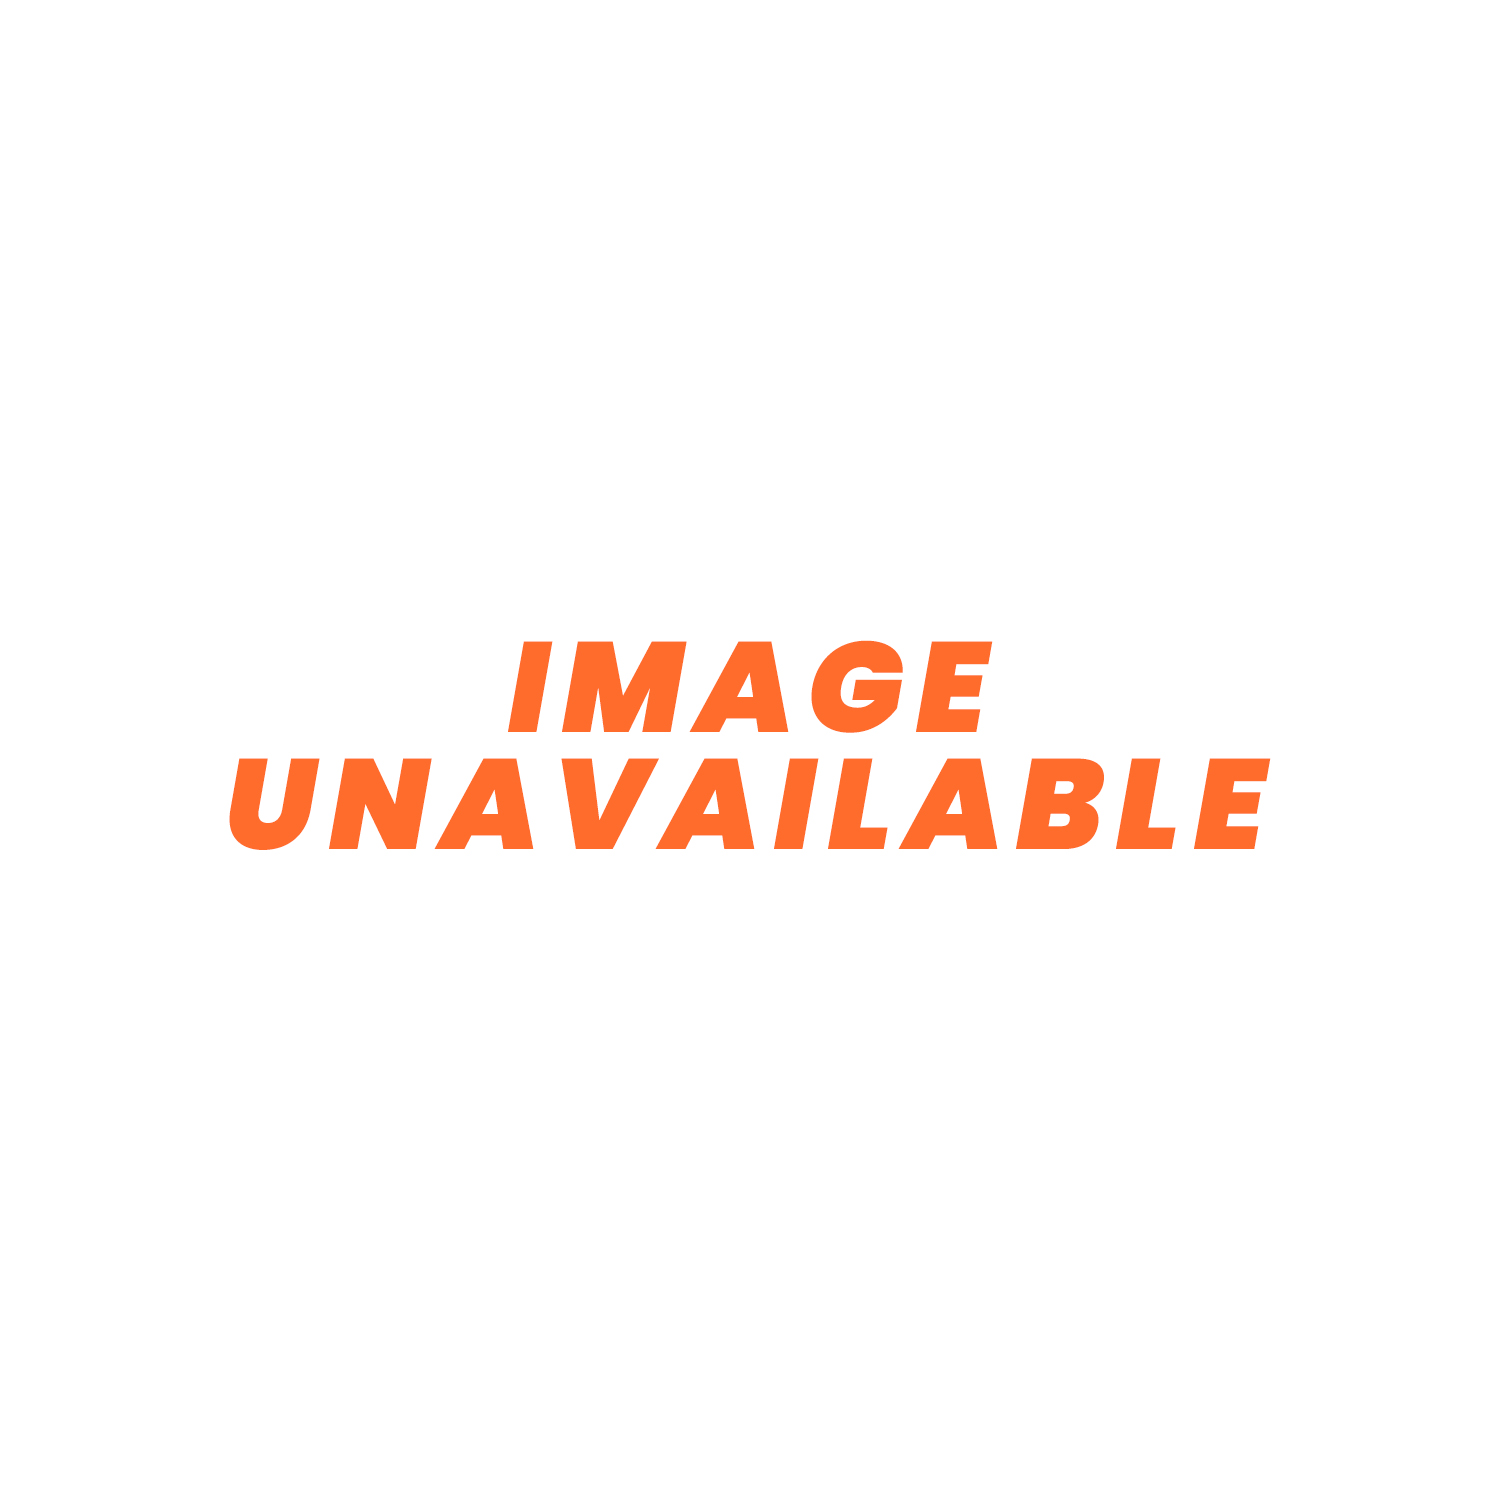 SK Extension Cable 230v 0.5m - 1454675